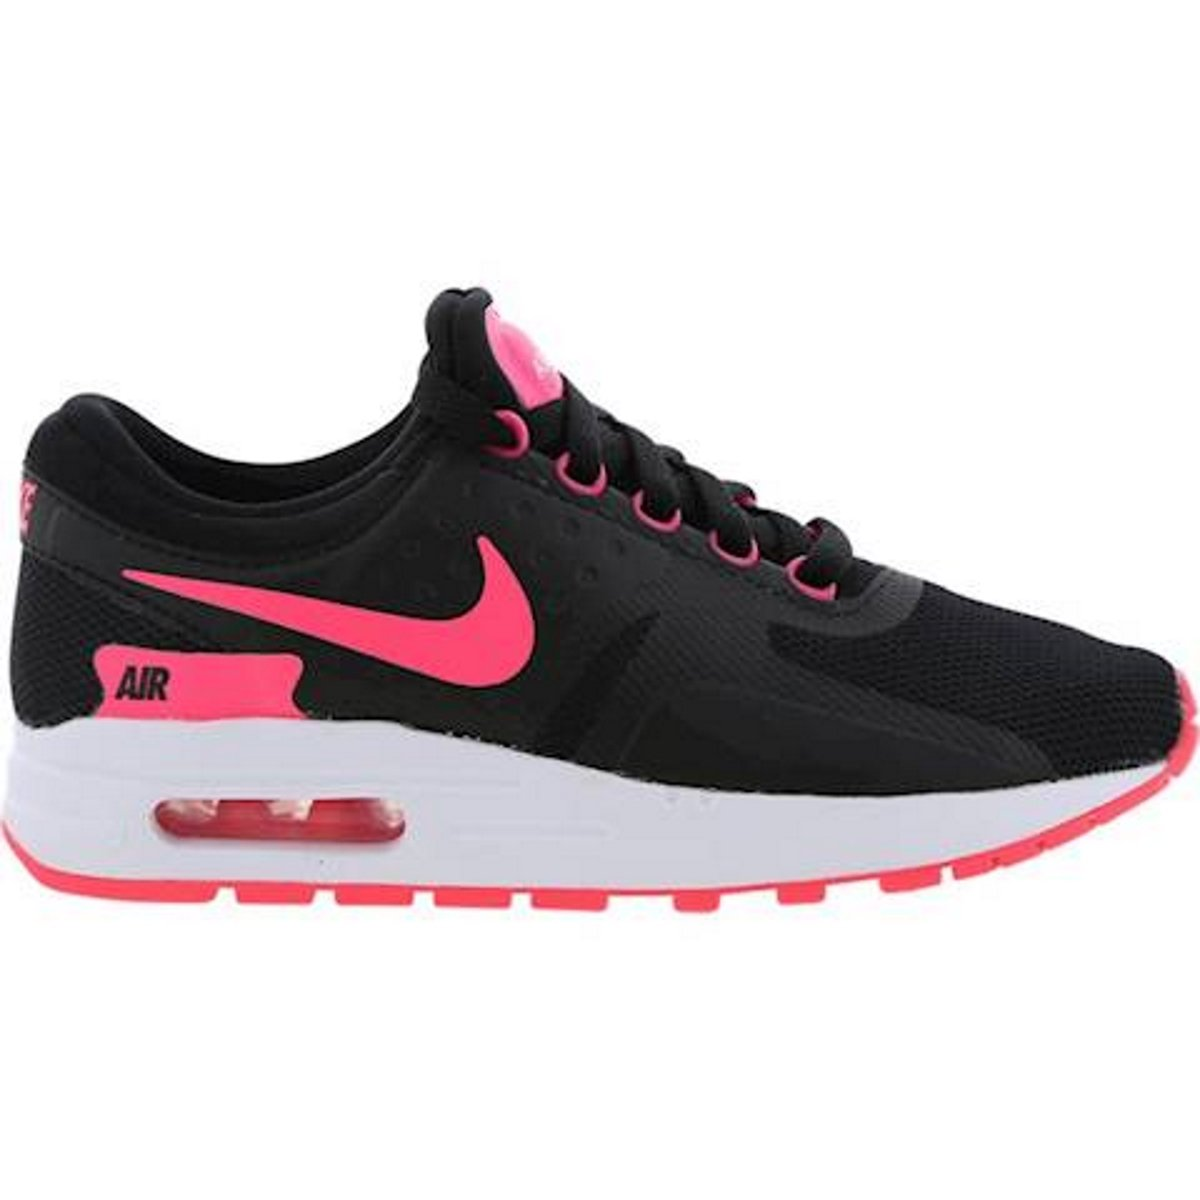 Nike  Air Max Zero Essential GS Running Shoe B079YB8WB7 4.5y|Black/ White/ Pink